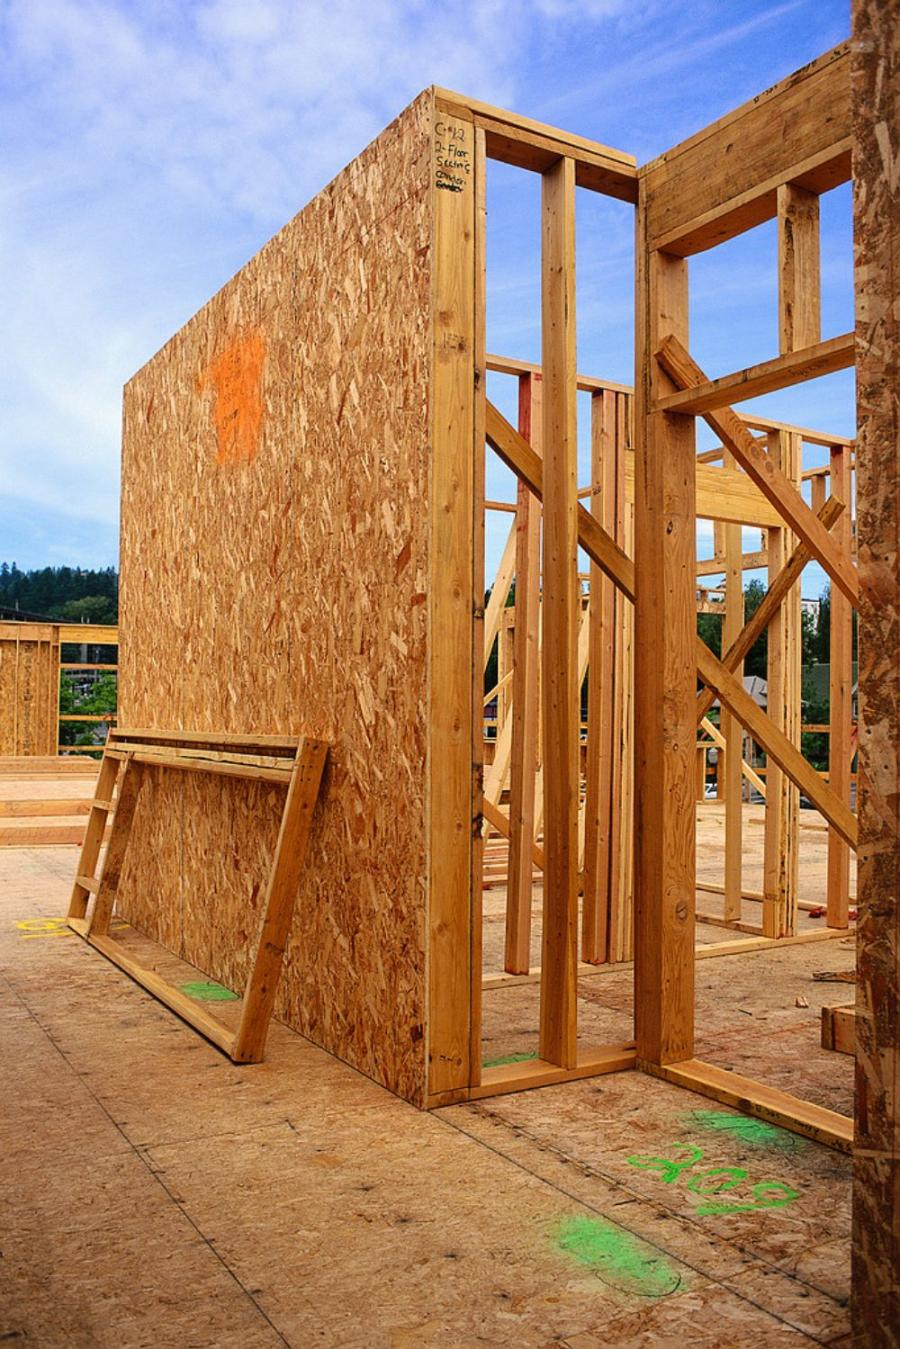 Last month, U.S. builders broke ground on the most homes in nearly four years. Single-family home building _ the bulk of the market _ rose for a fourth straight month. Permits to build single-family homes reached their highest point since March 2010.